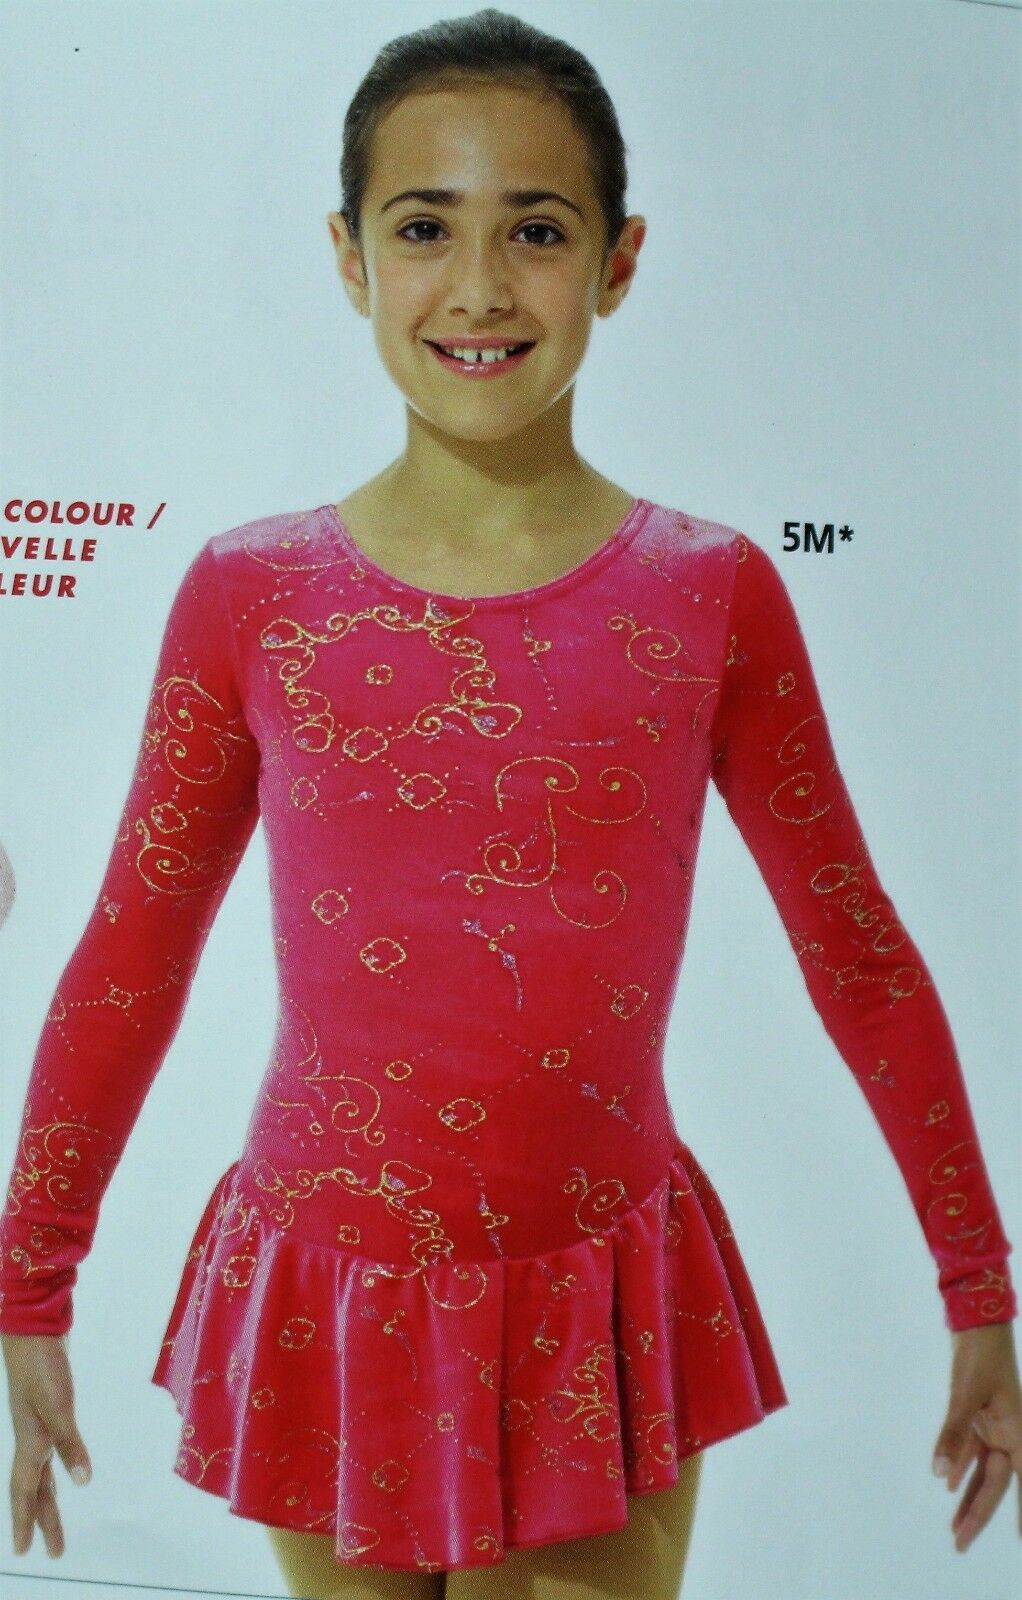 Mondor Model 2723 Girls Skating Dress -  Medieval Red